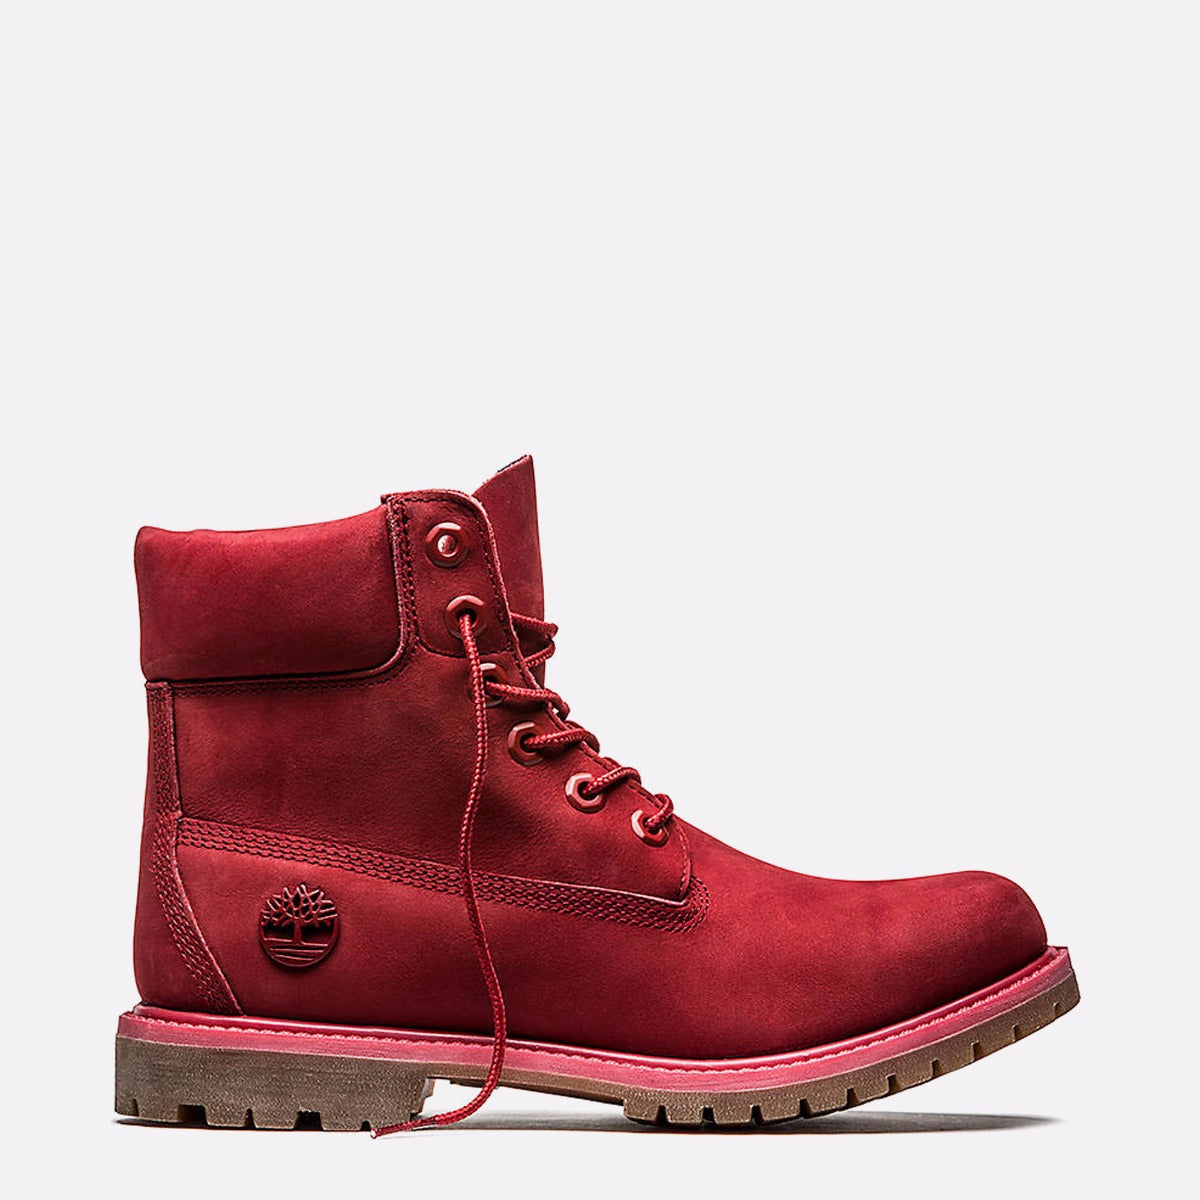 Women s Timberland 6-Inch Premium Waterproof Boots Ruby Red ... f12937842d